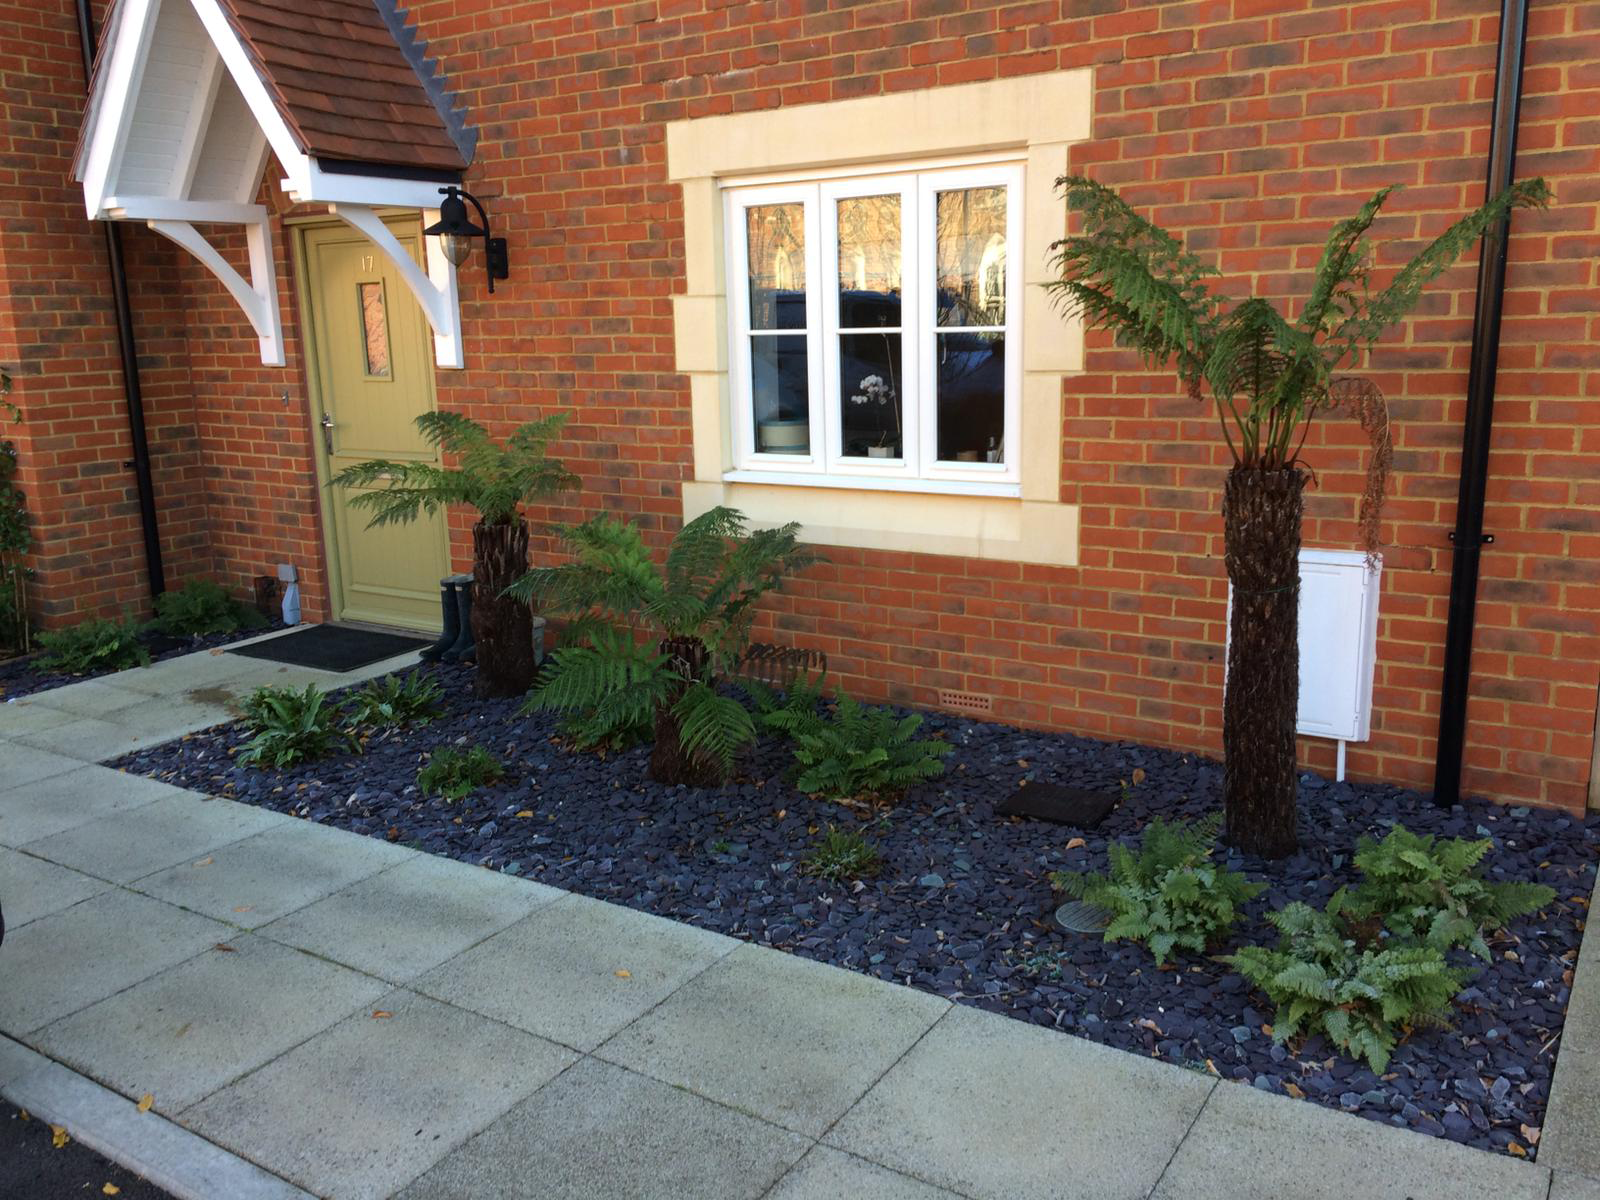 Front garden design with gravel and paving